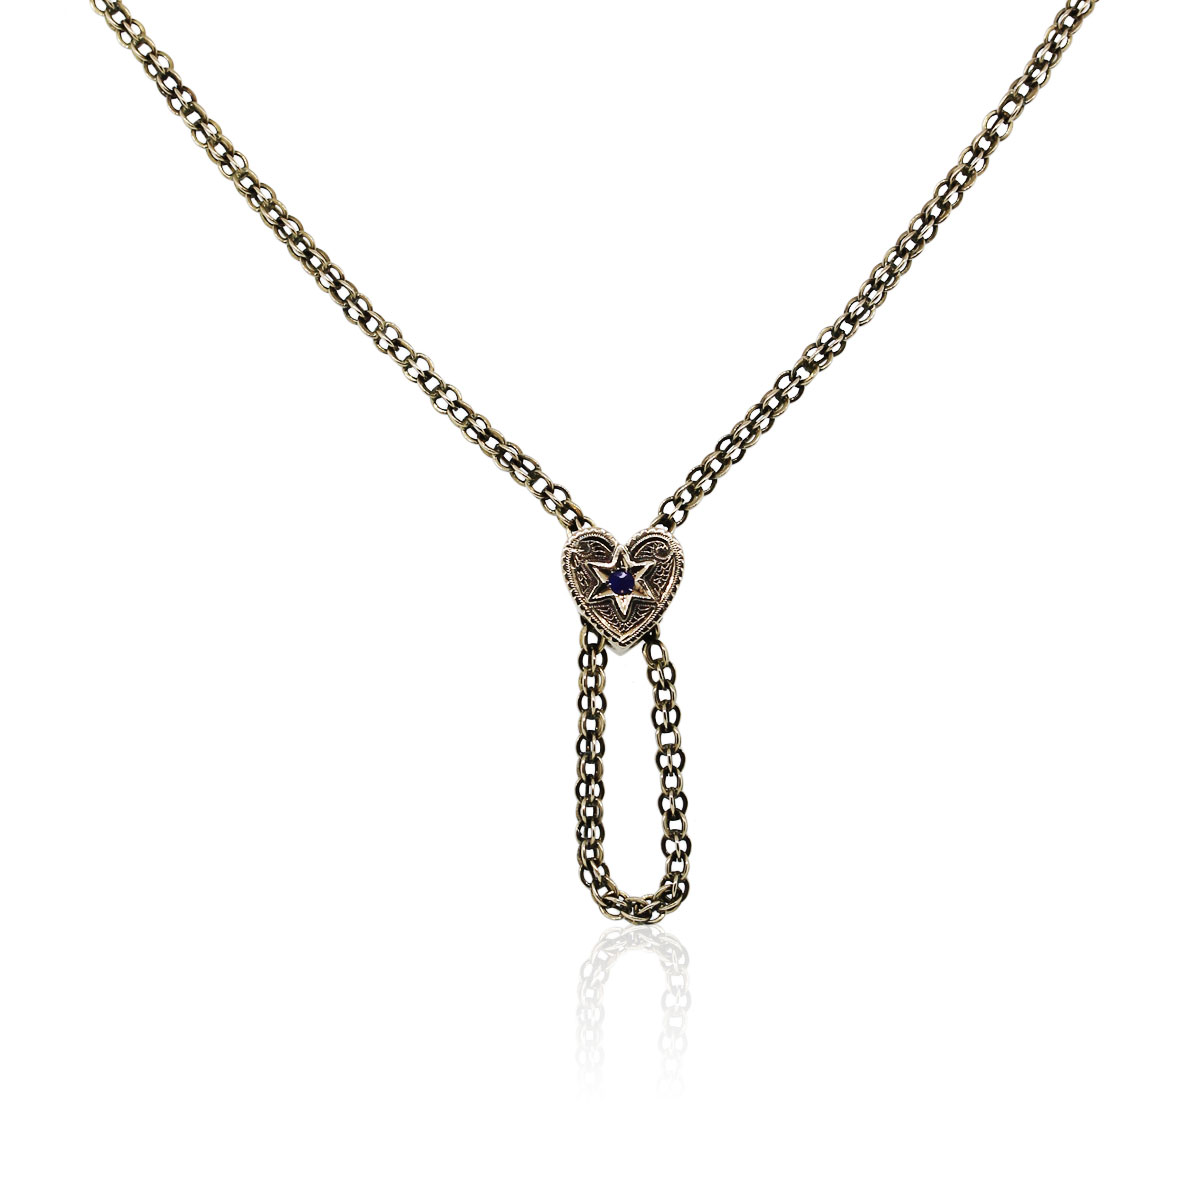 You are viewing this 14K Yellow Gold Vintage Heart Lariat Necklace!